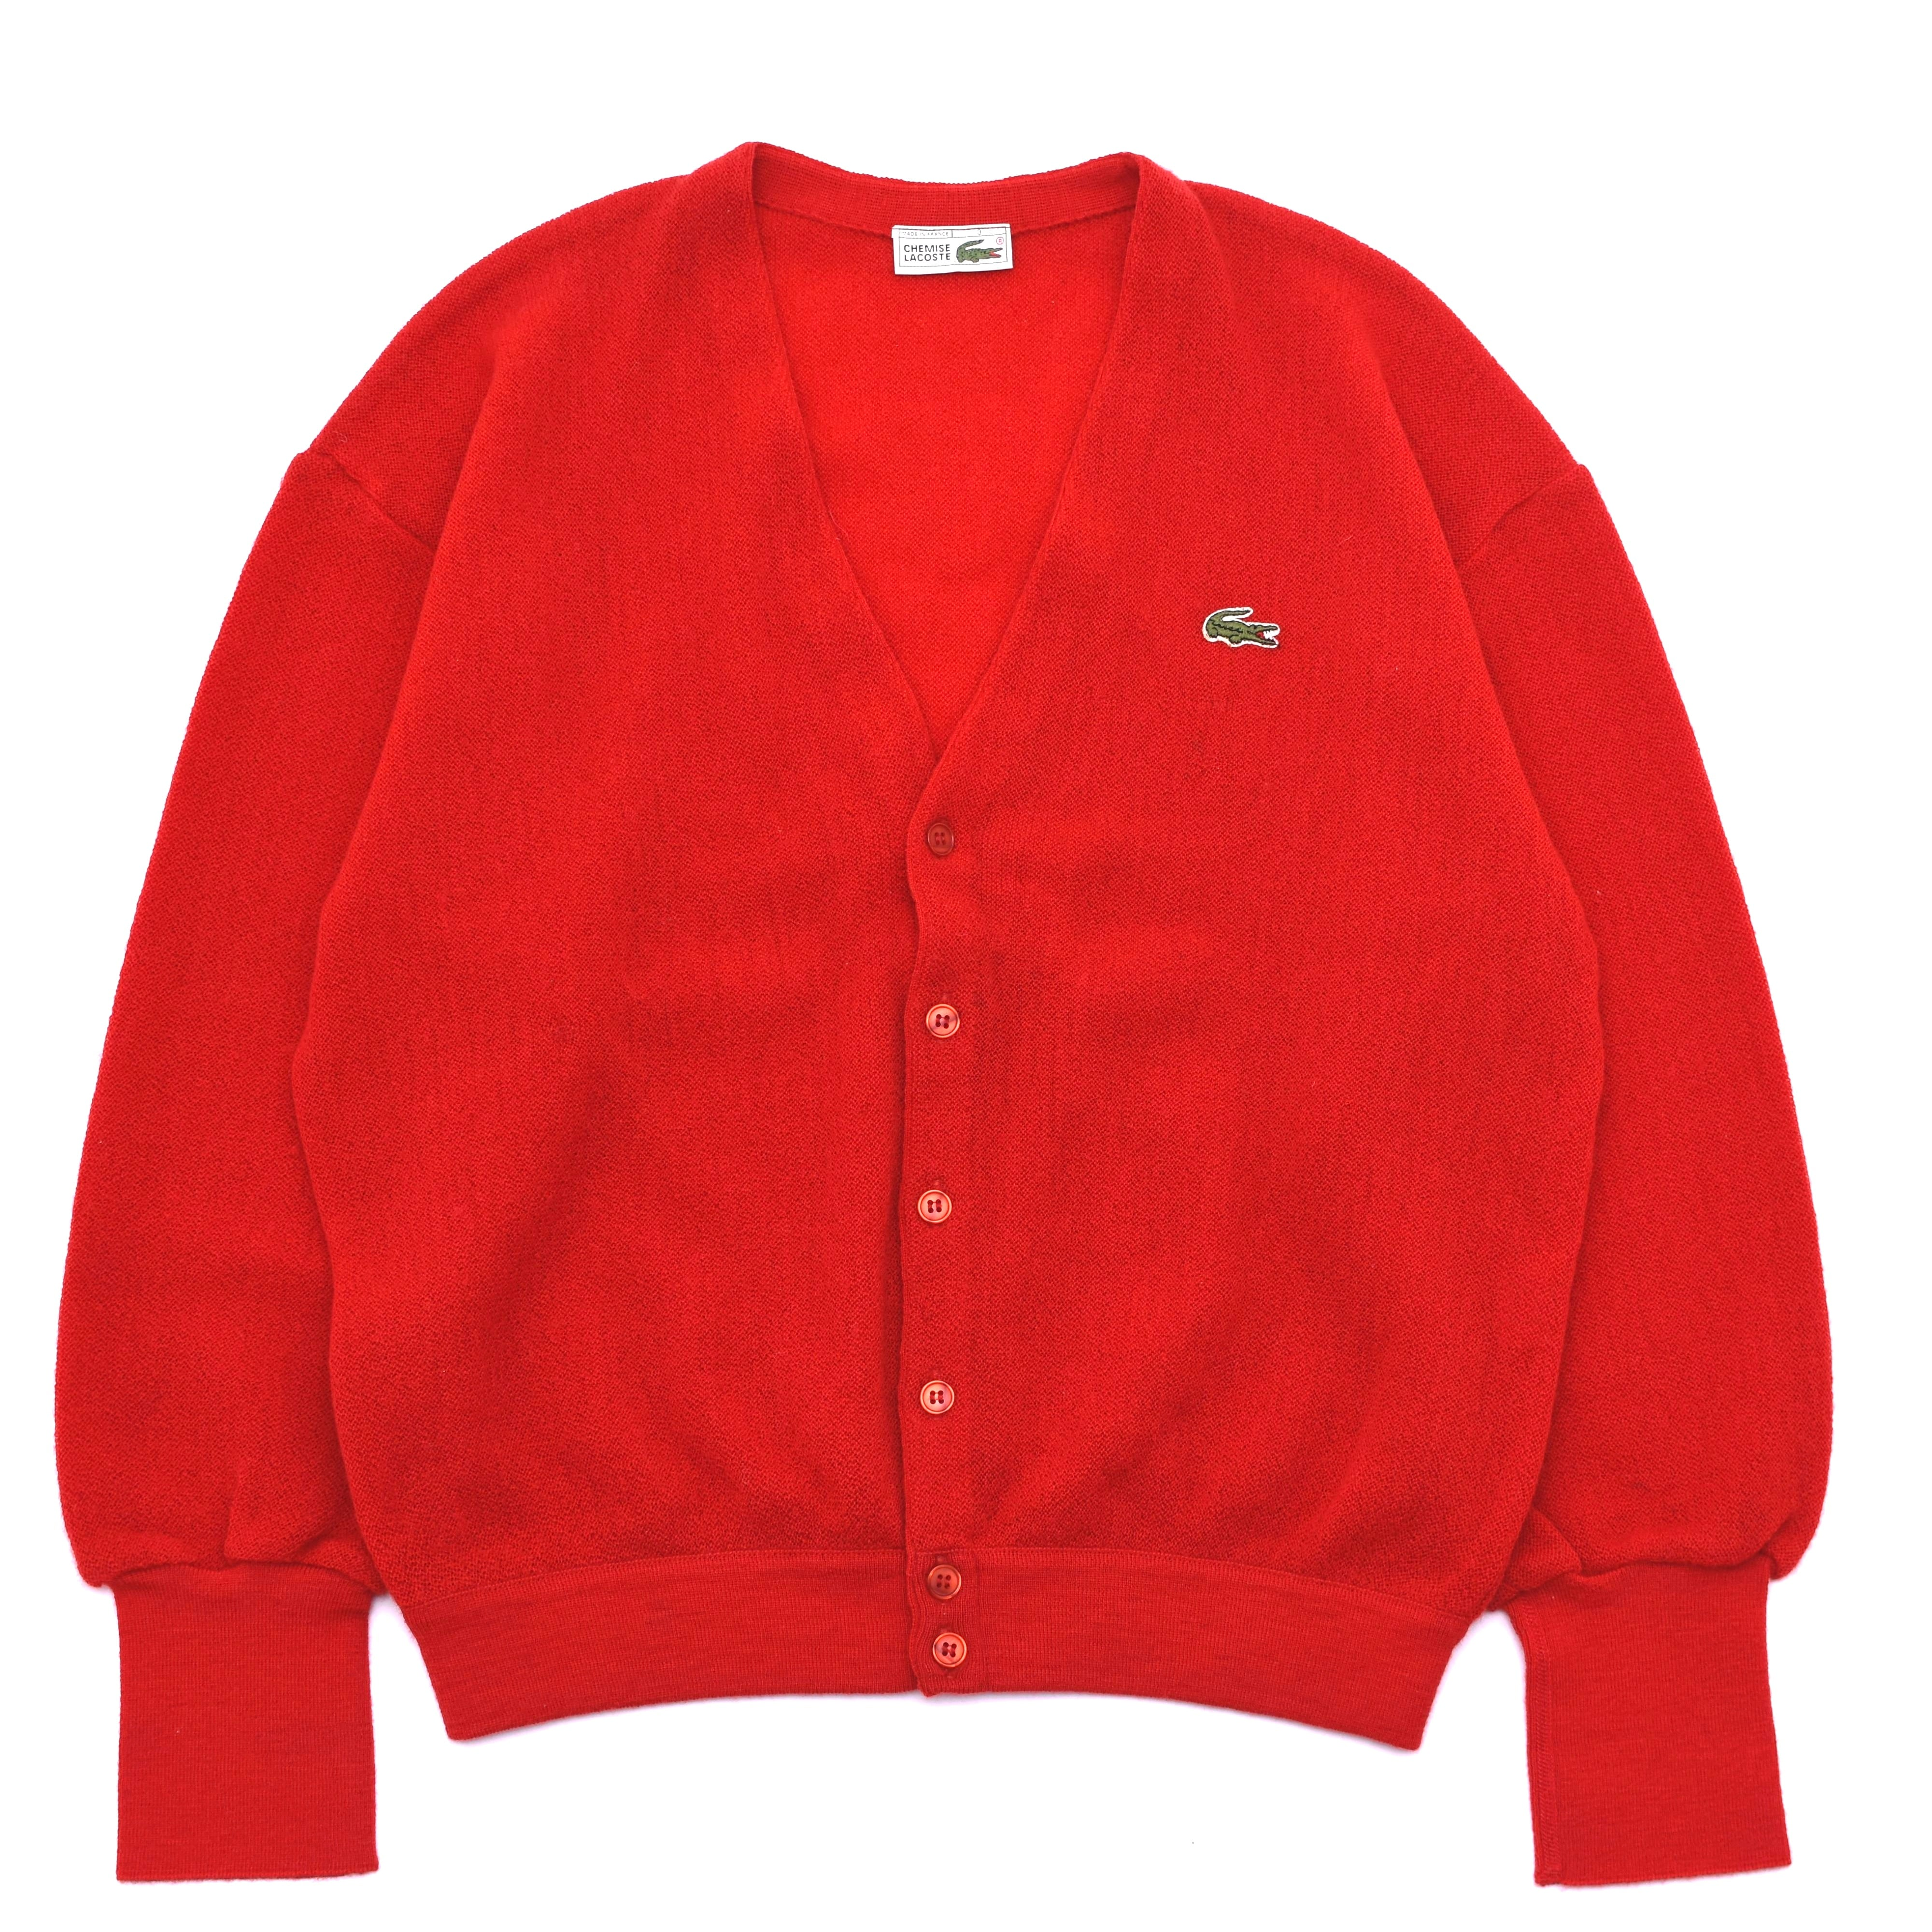 France made LACOSTE wool knit cardigan